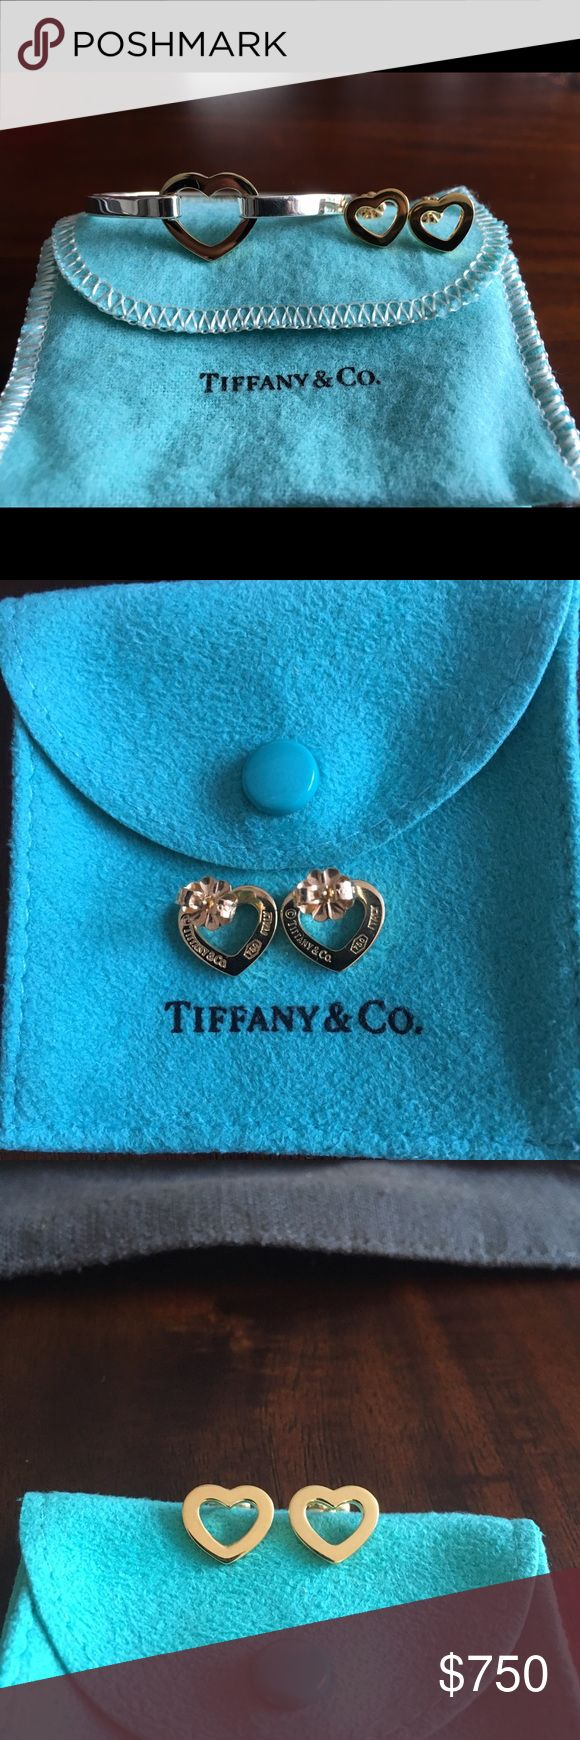 Authentic Tiffany & Co Heart Earring & Bangle Set Classic retired Tiffany pieces that are hard to find! The bangle is in sterling silver and the heart is in 18k gold. The earrings and backs are 18k gold. The bangle has been worn a few times and in excellent condition.  The earring have never been worn and have just been stored away.  Earring measurements are 12mm x 10mm. The bangle measurements are 2.25 at its closed position. The original jewelry pouch and box for each piece will be…